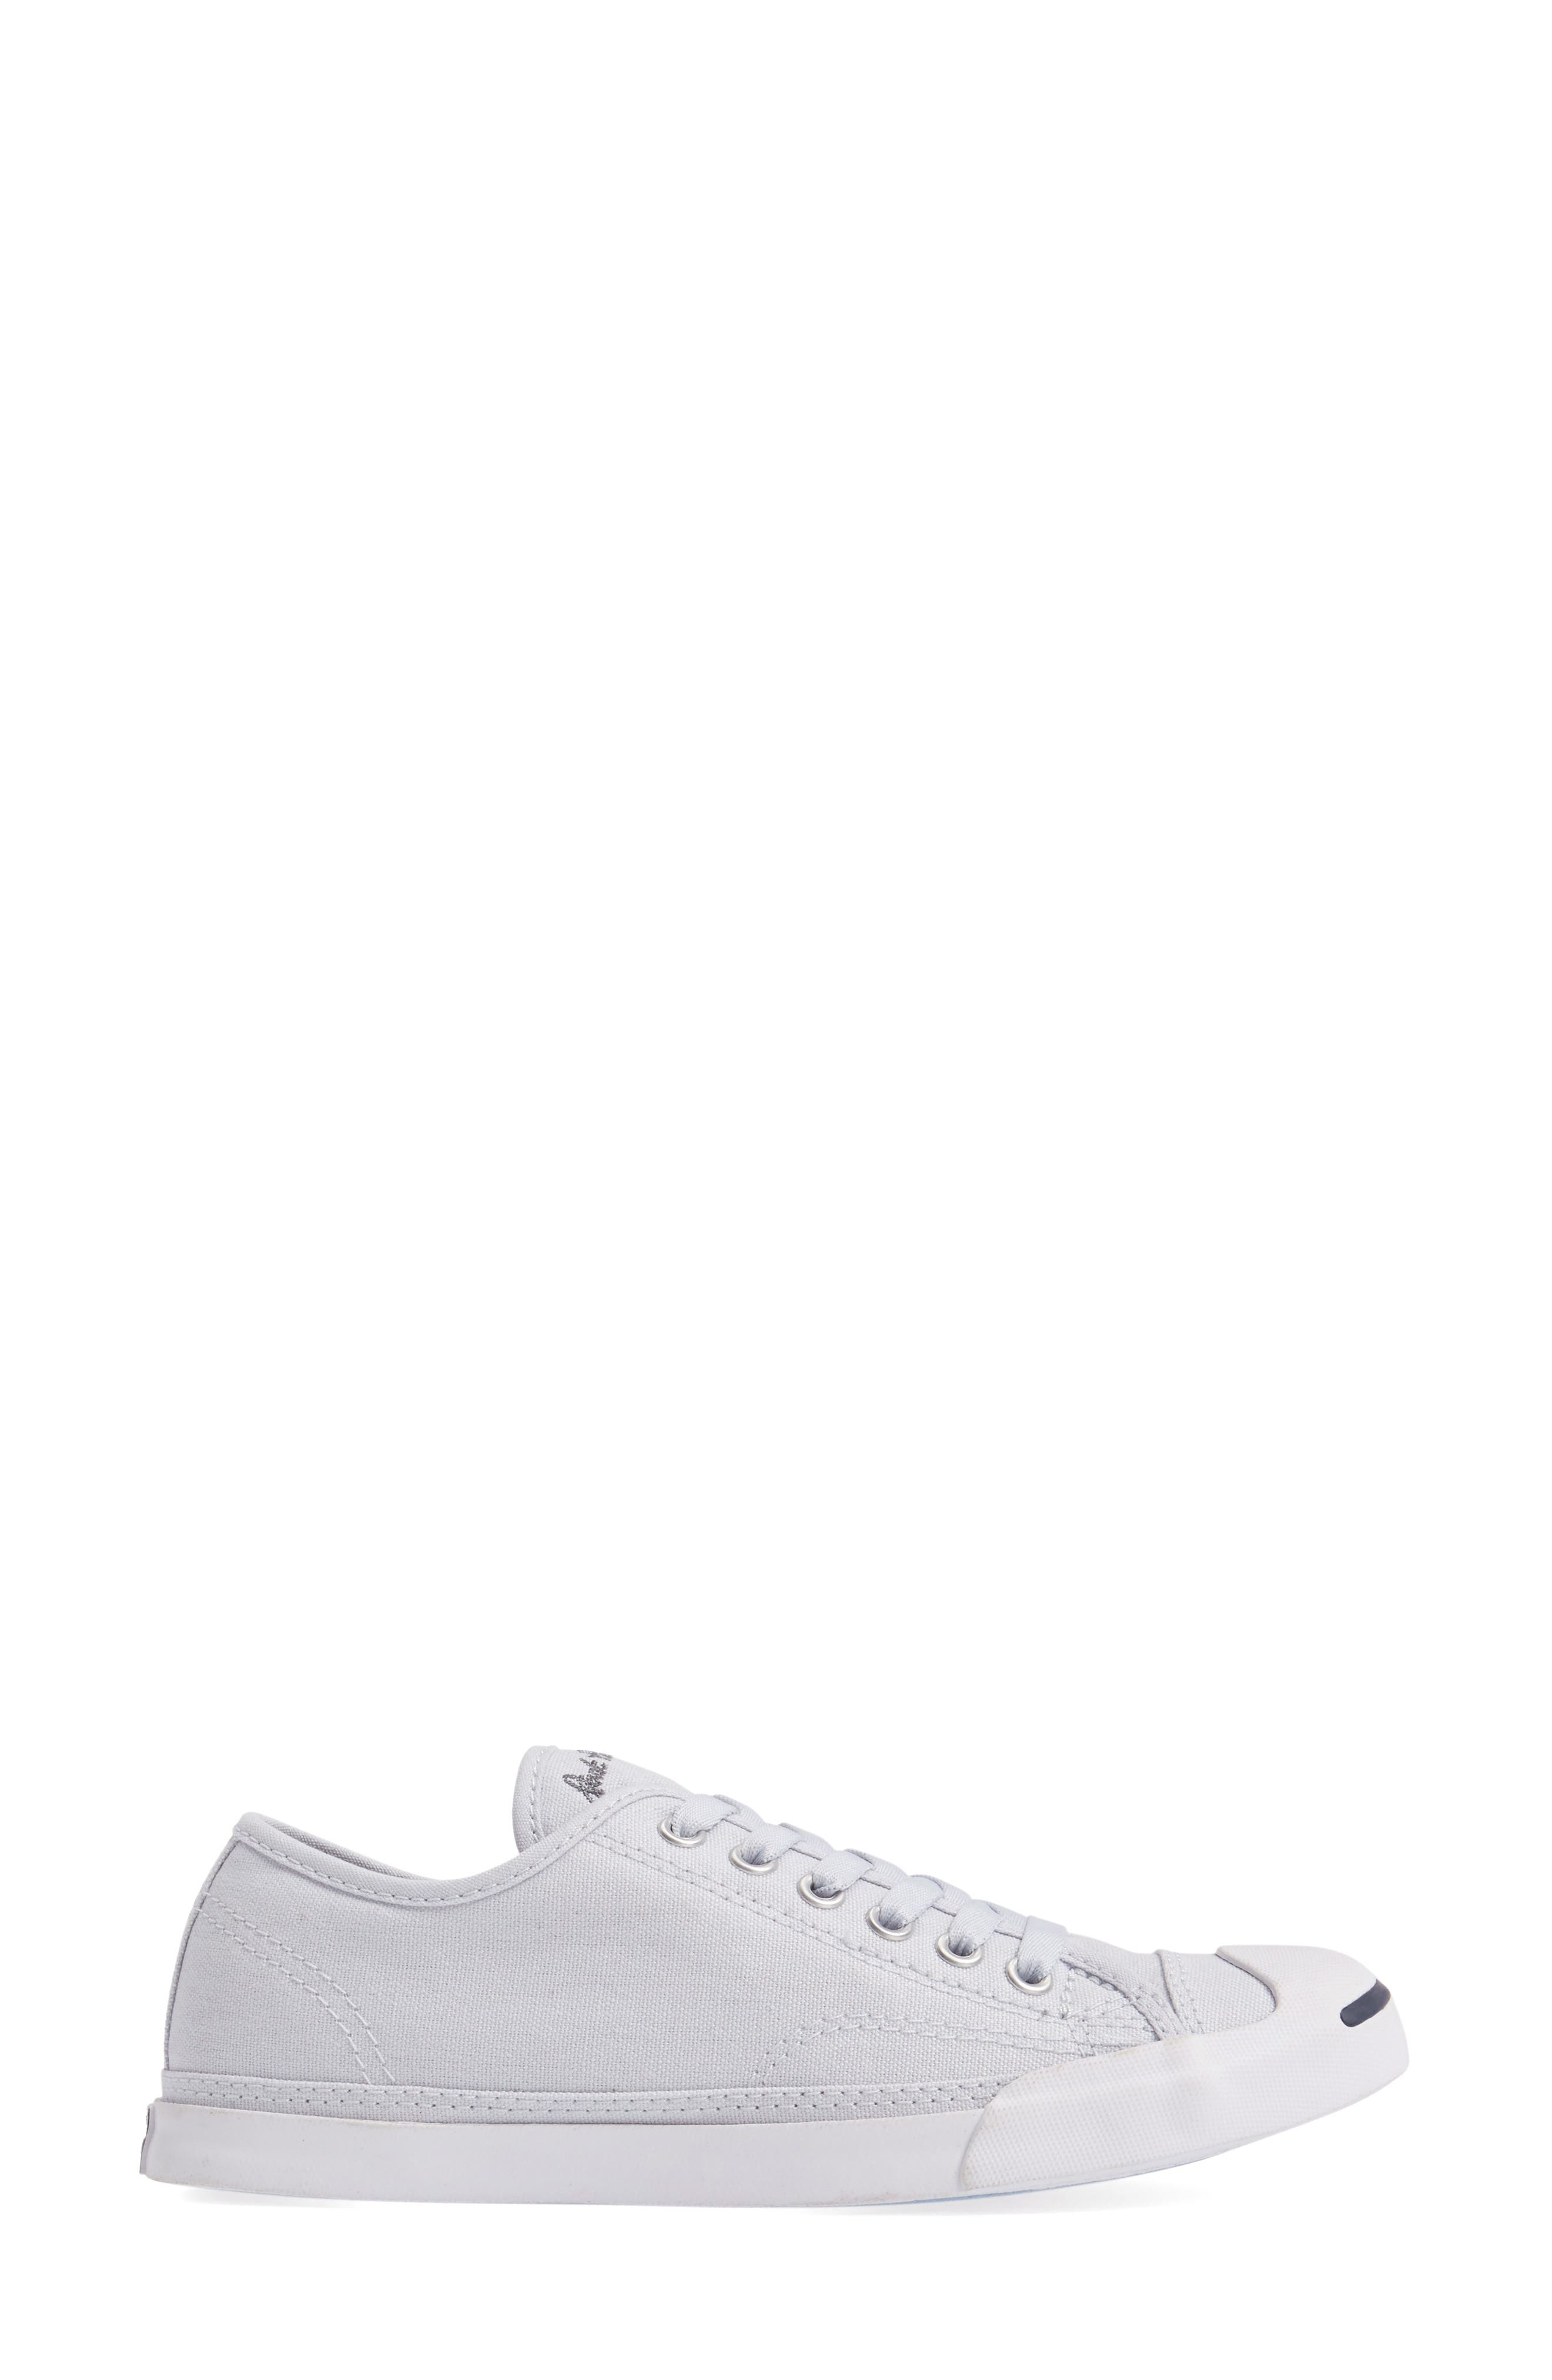 Jack Purcell Signature Ox Low Top Sneaker,                             Alternate thumbnail 3, color,                             Platinum